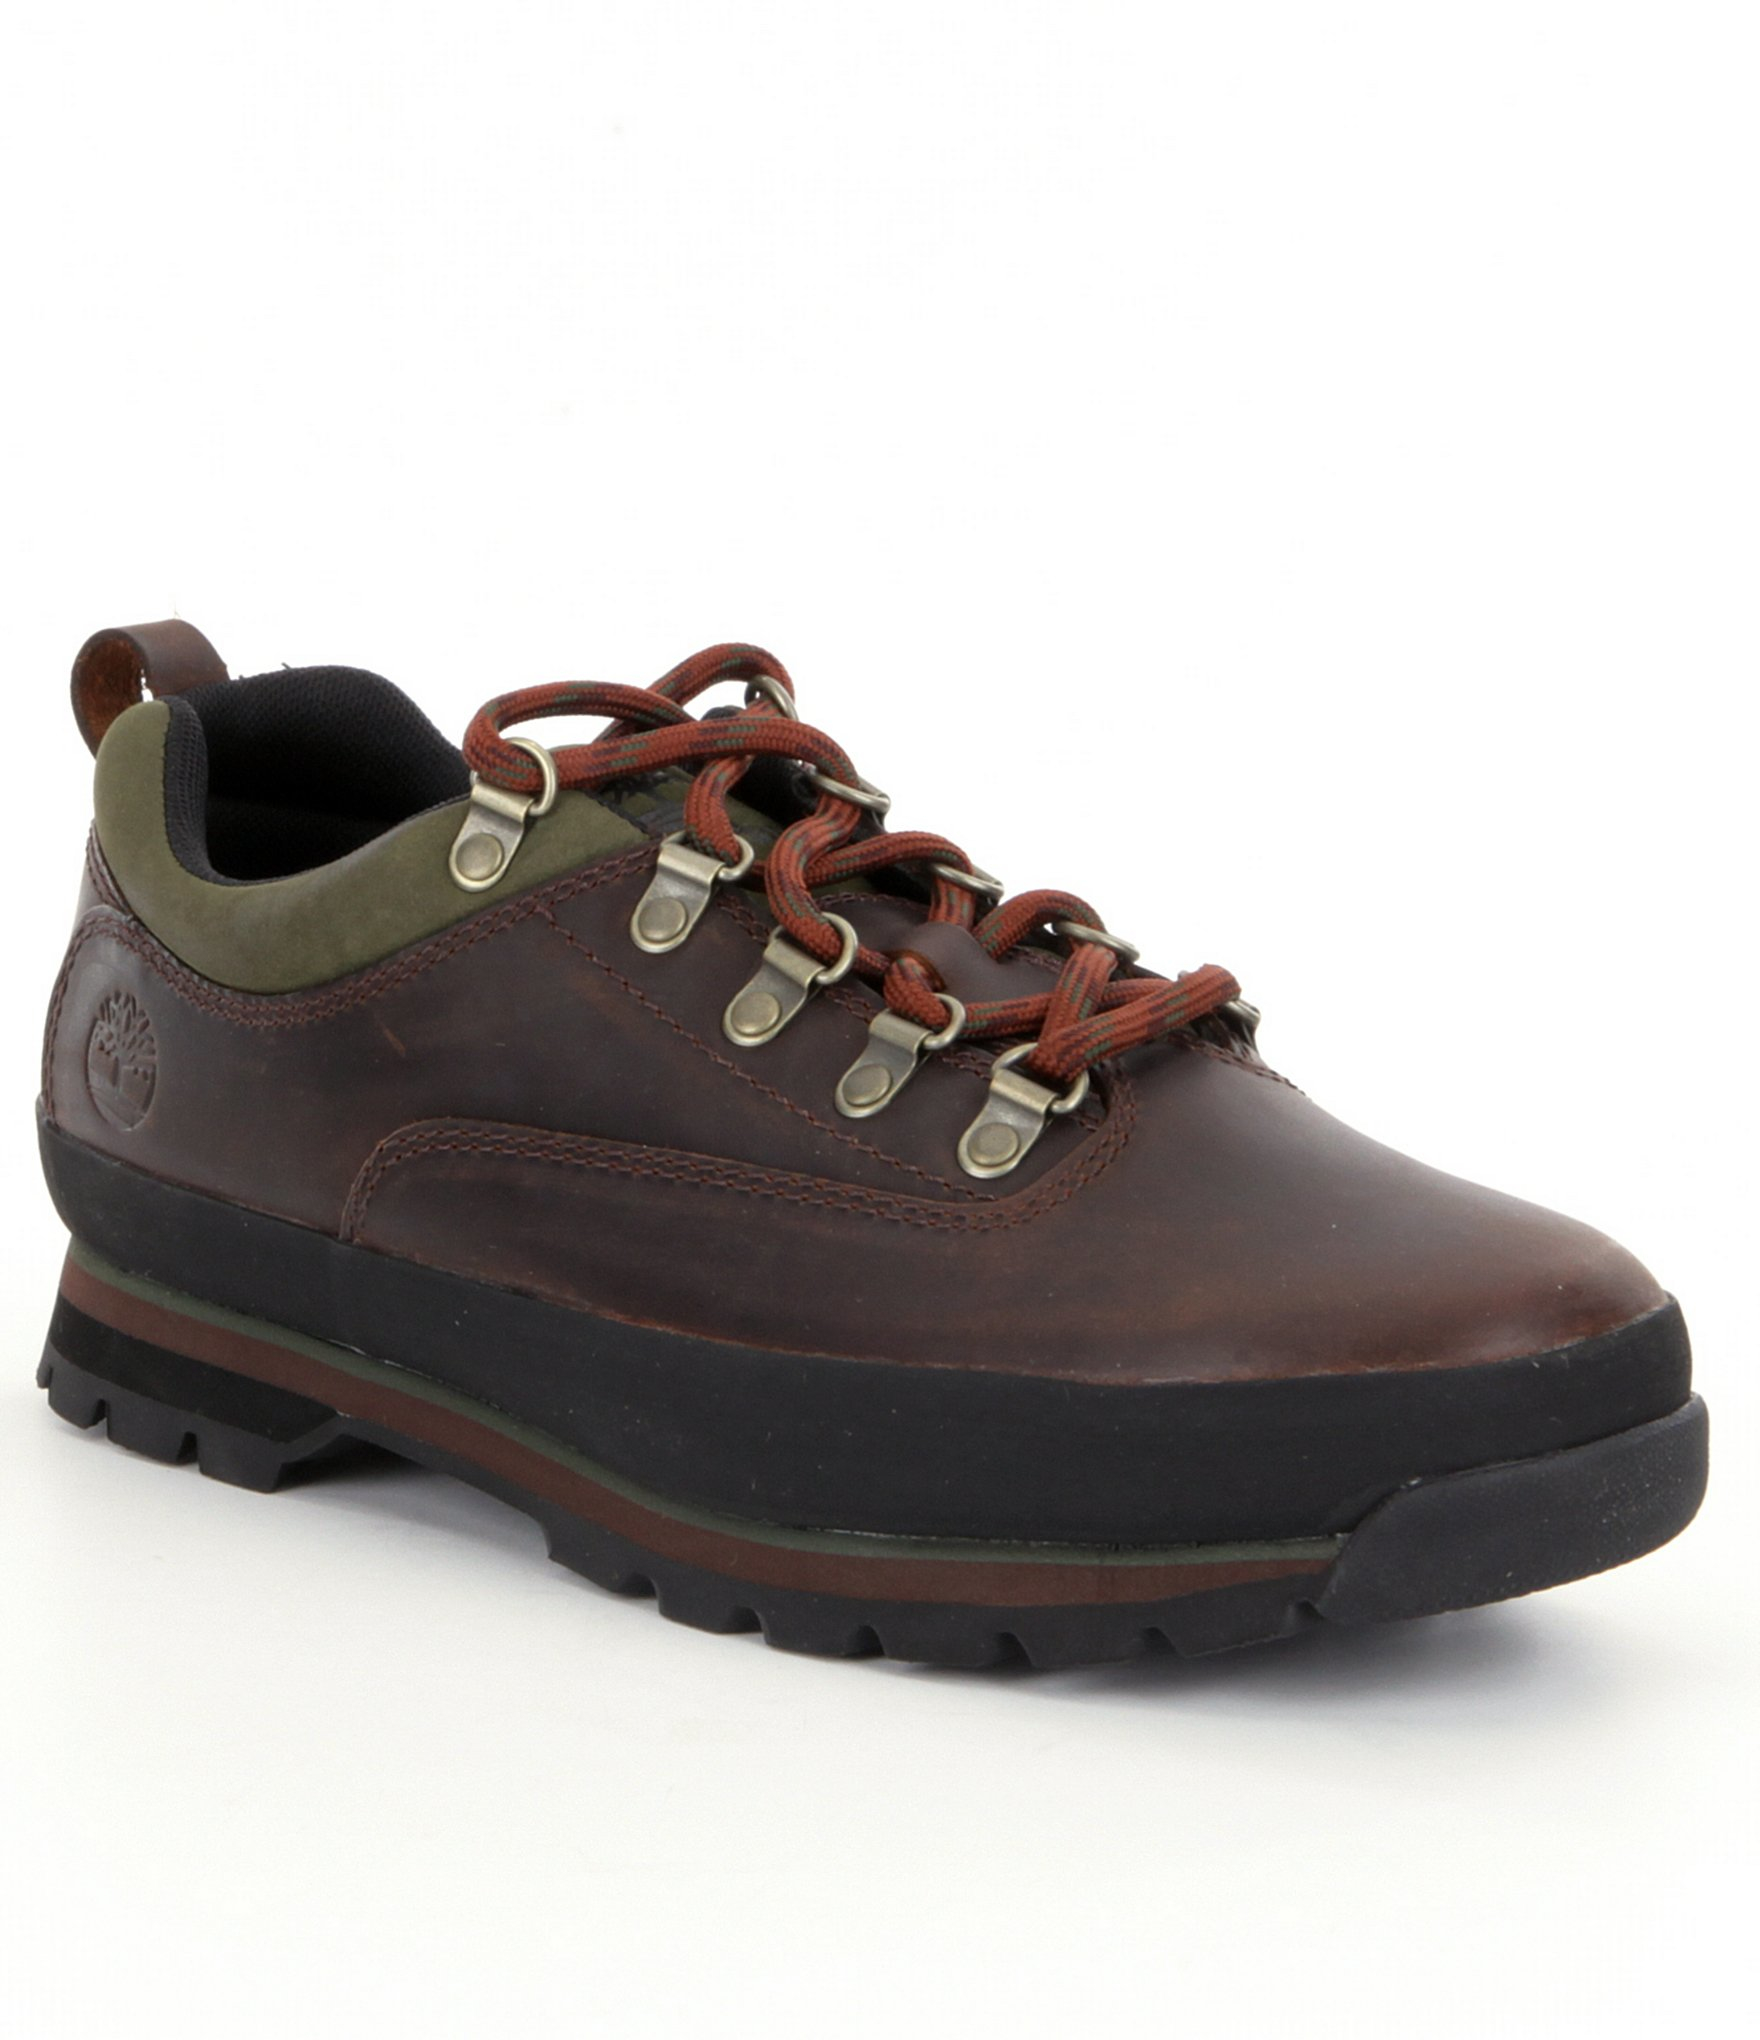 Dc Hbx Lyst Timberland Men ́s Euro Hiker Low Hiking Shoes In